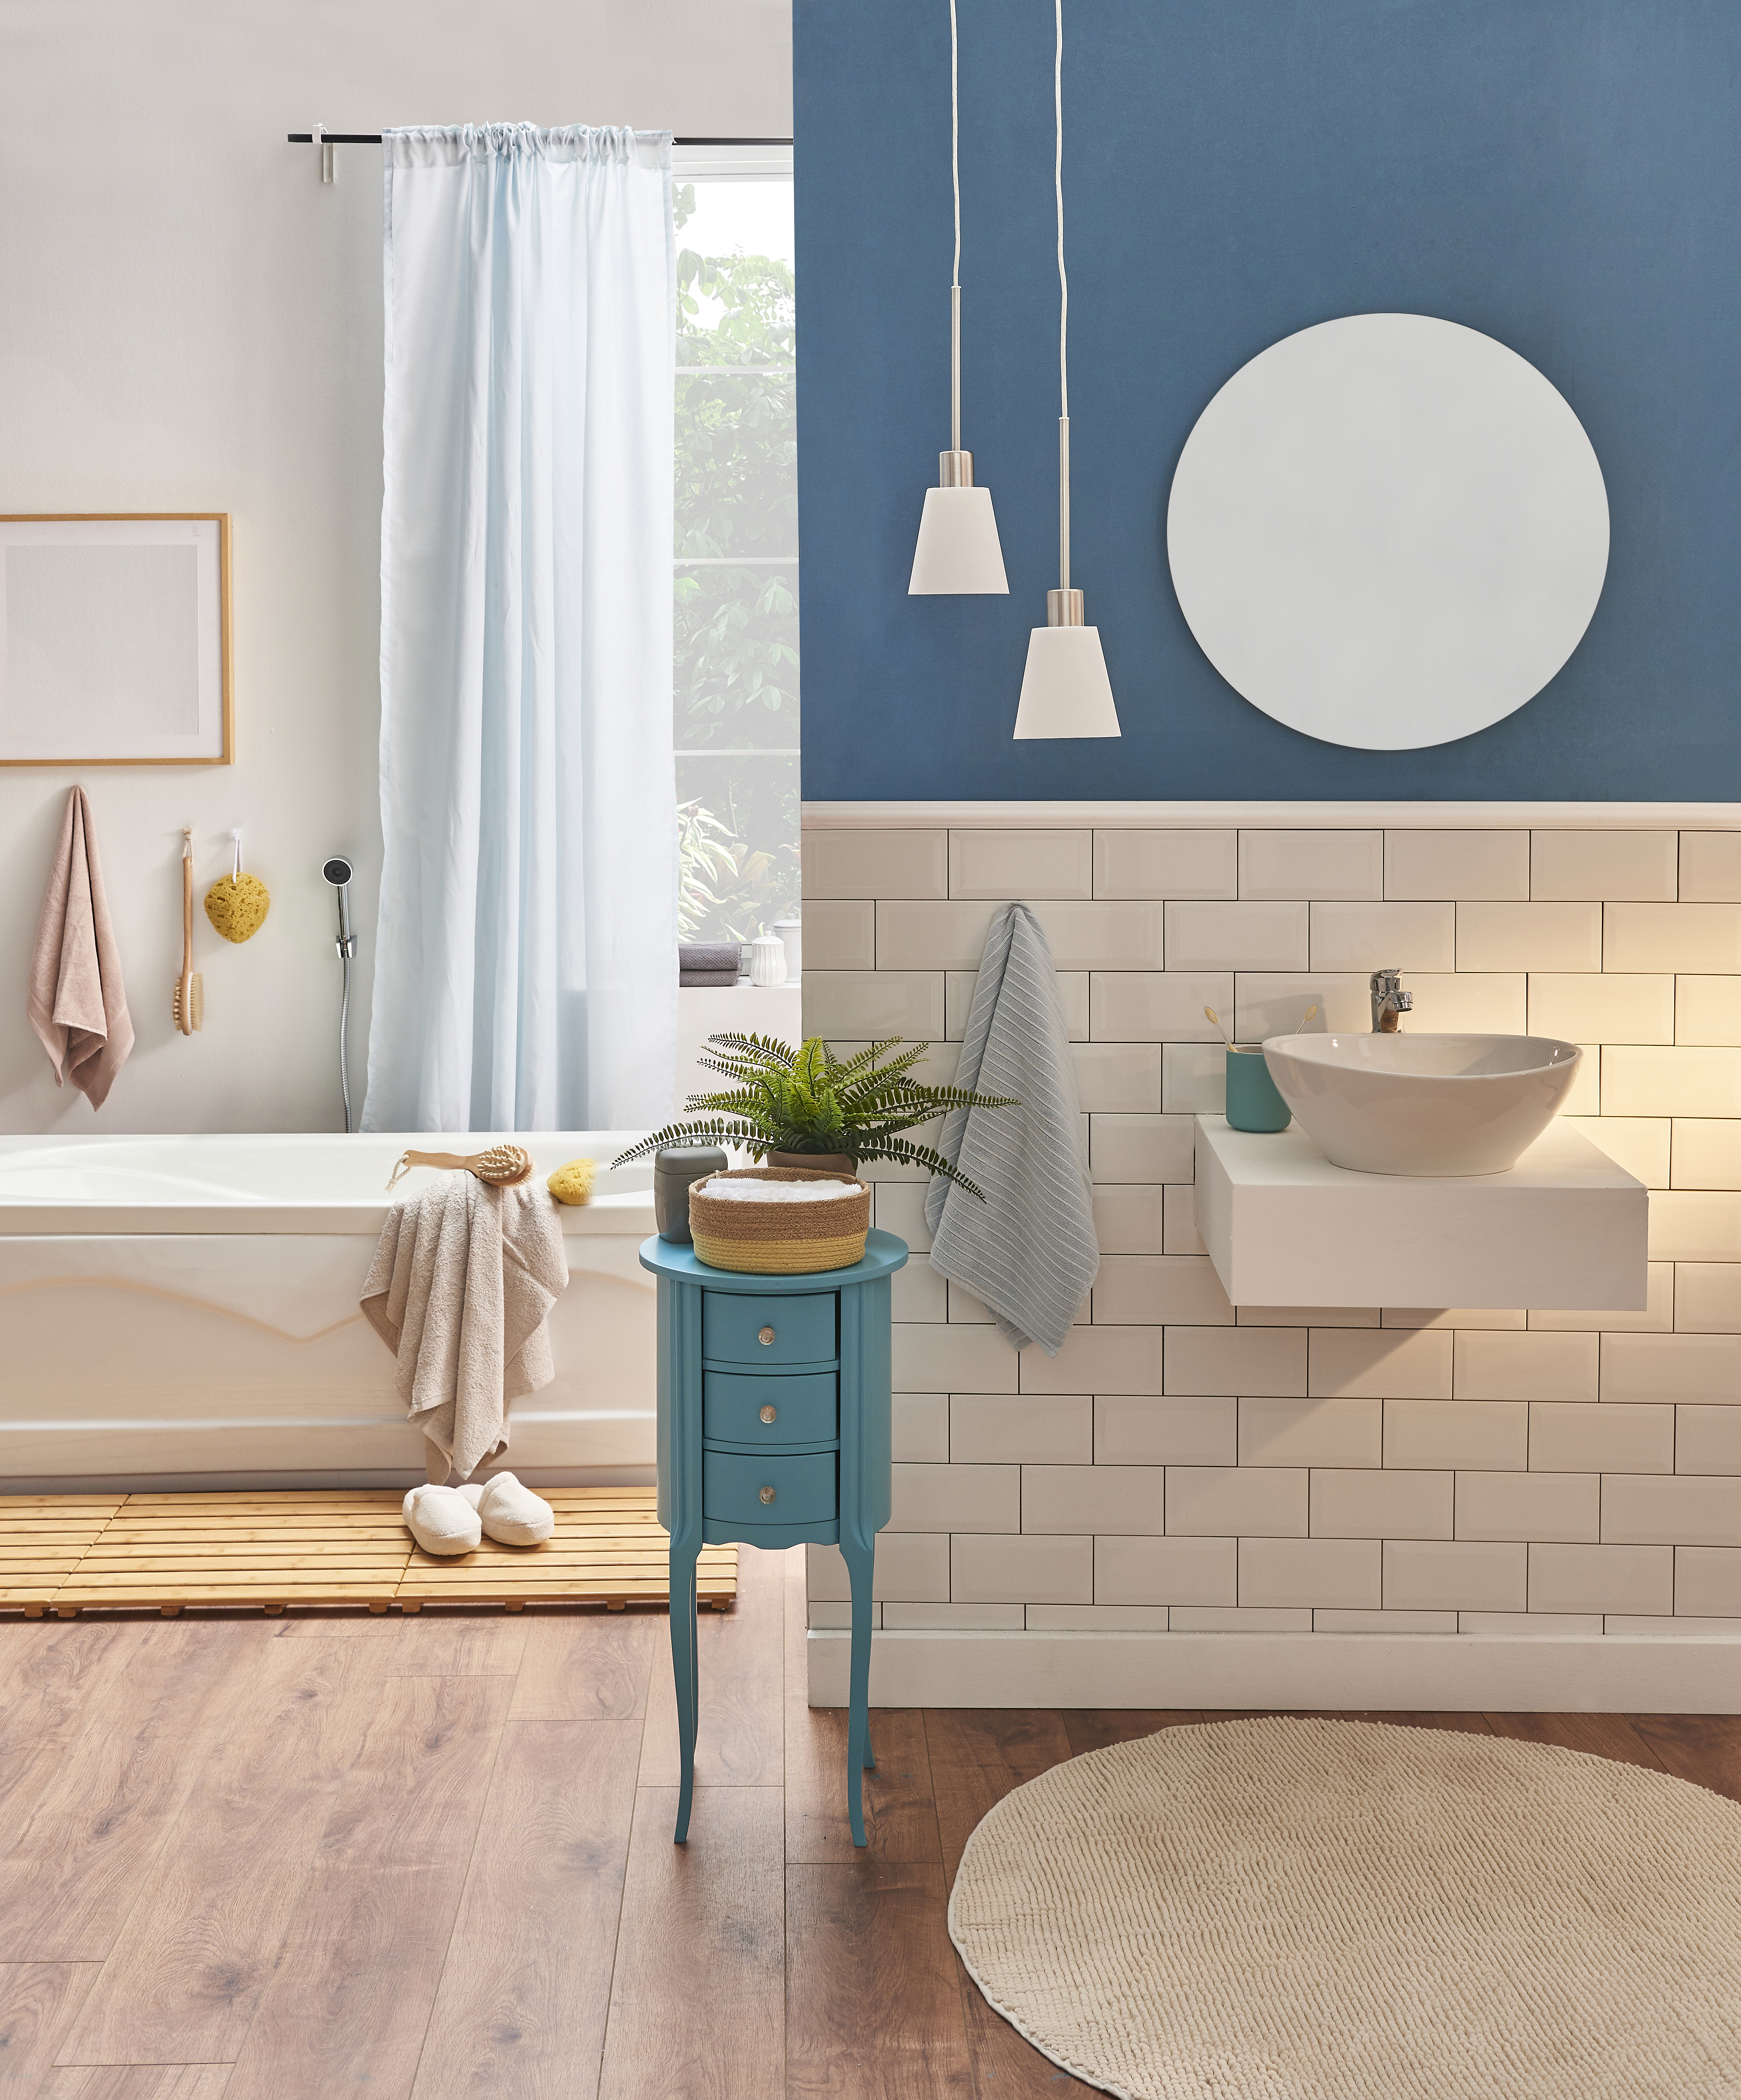 Add A Splash Of Colour Bathroom Paint Ideas By Mira Showers